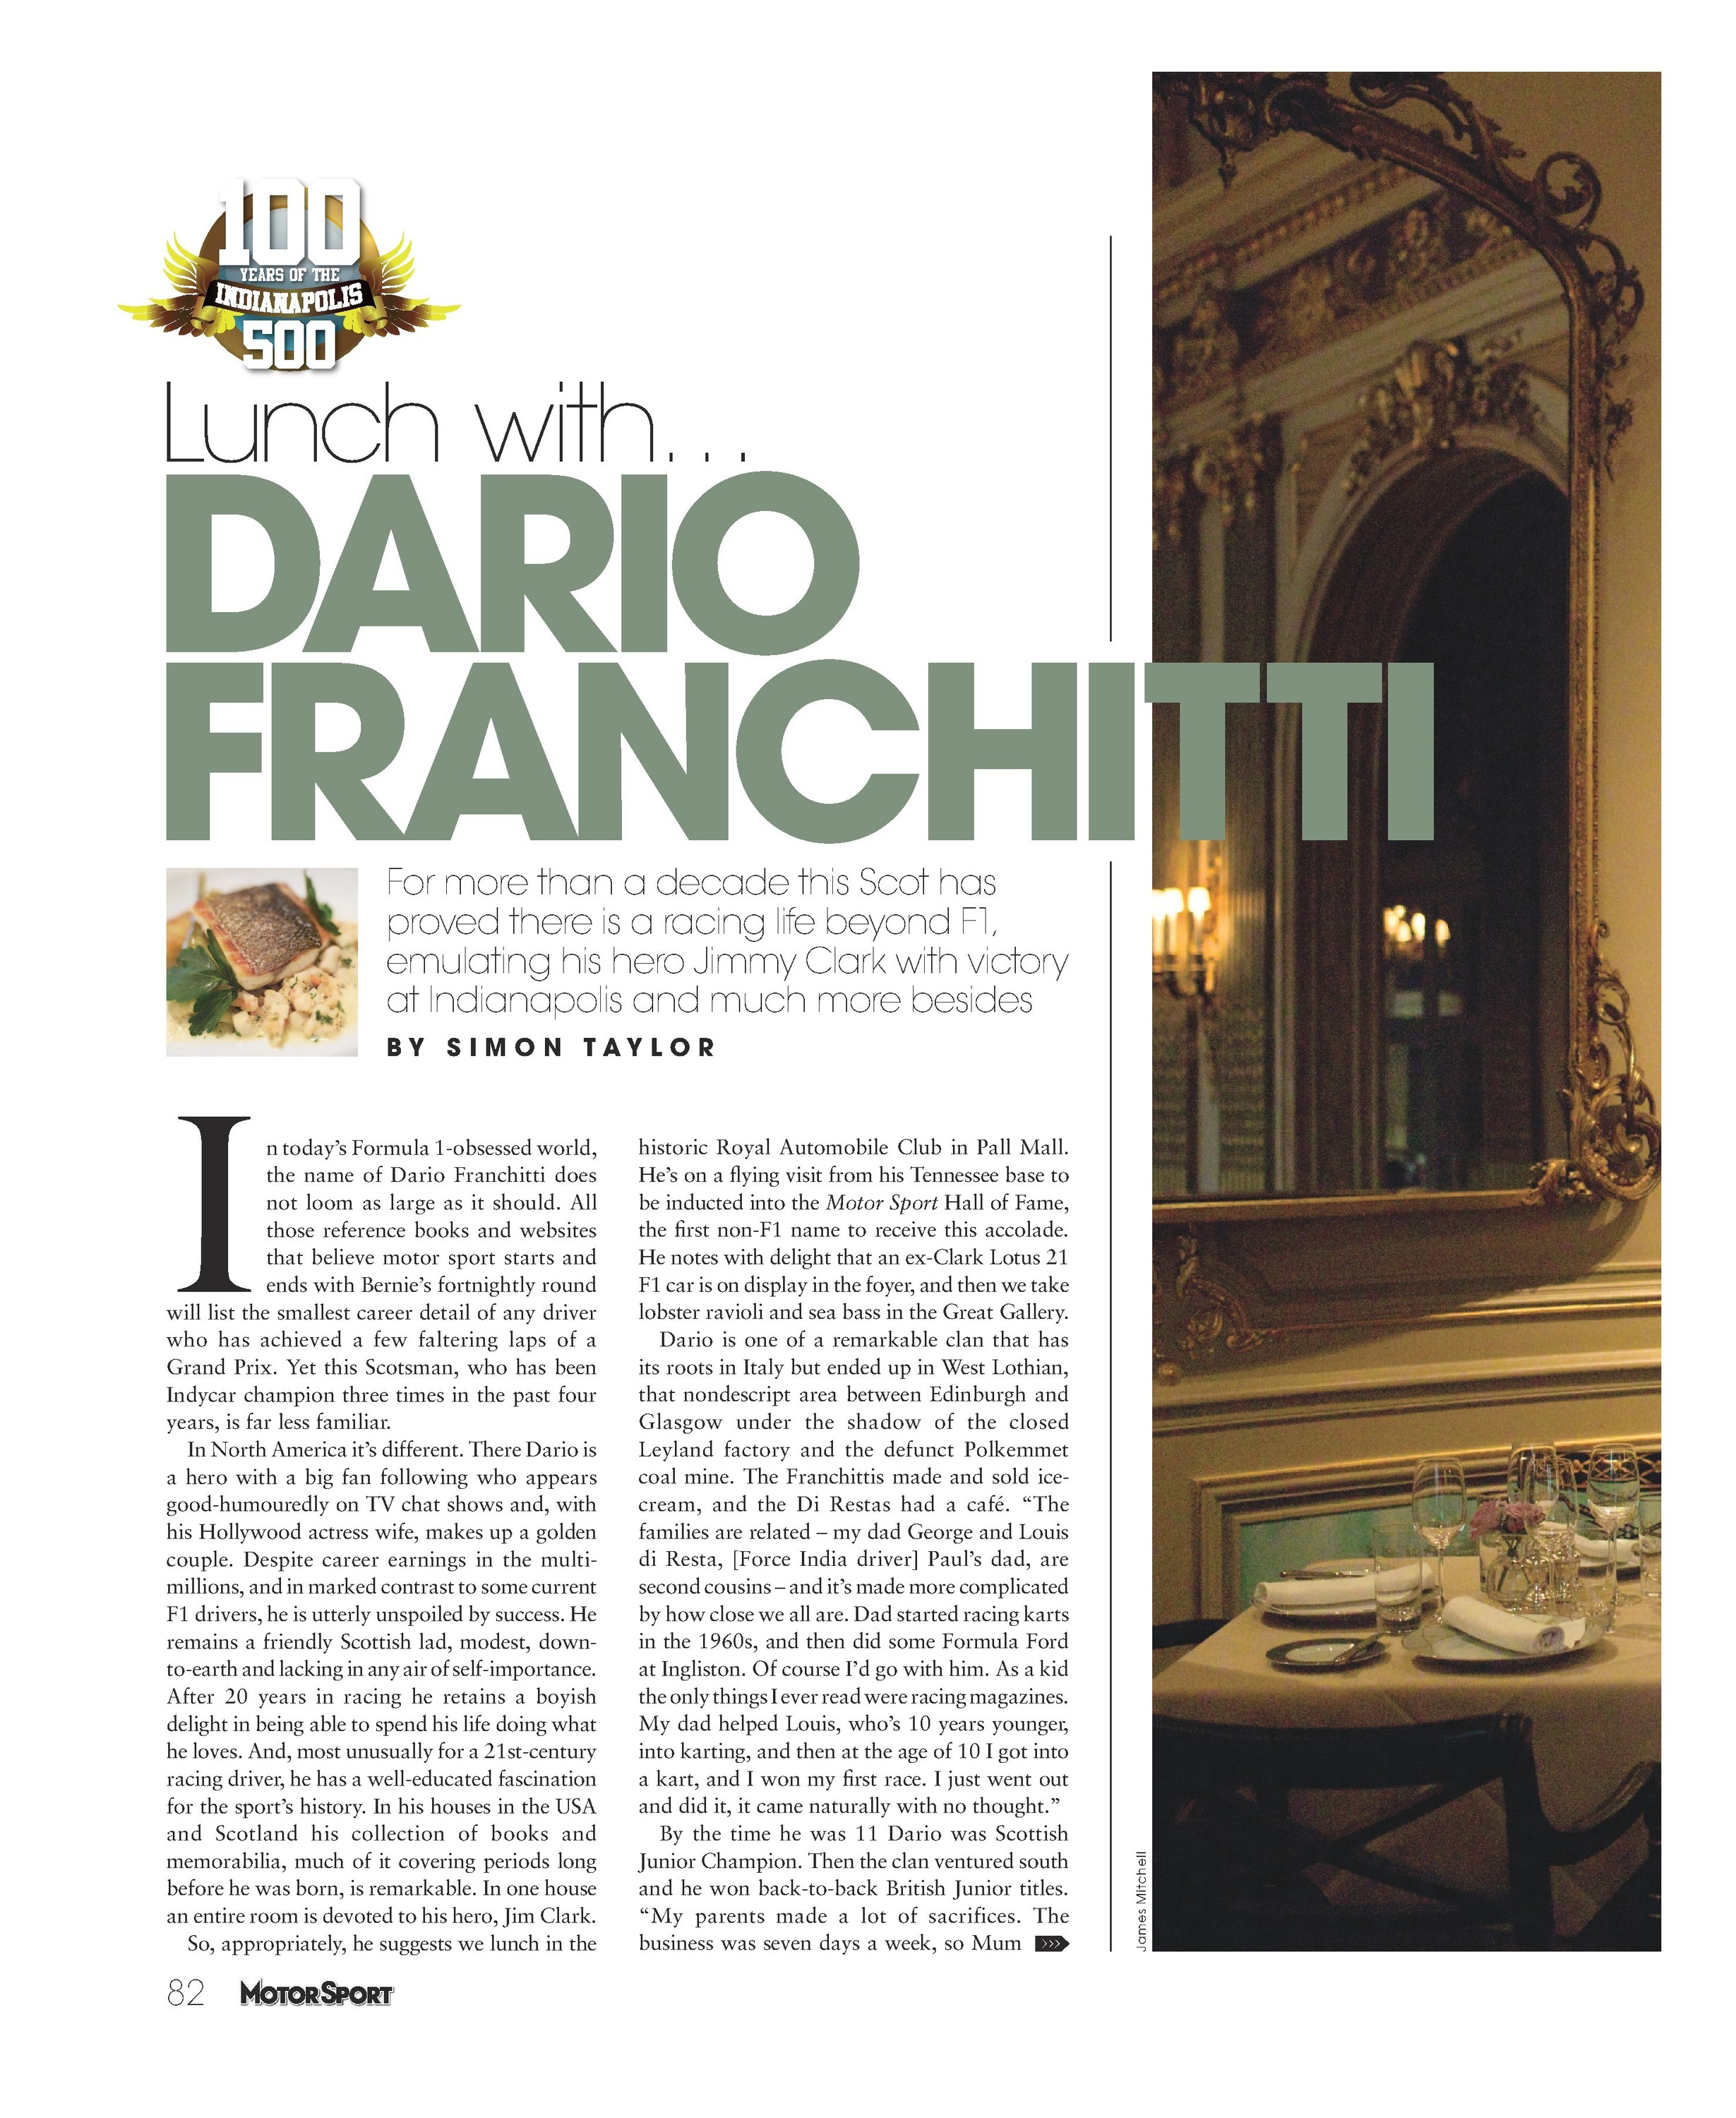 Lunch with... Dario Franchitti image